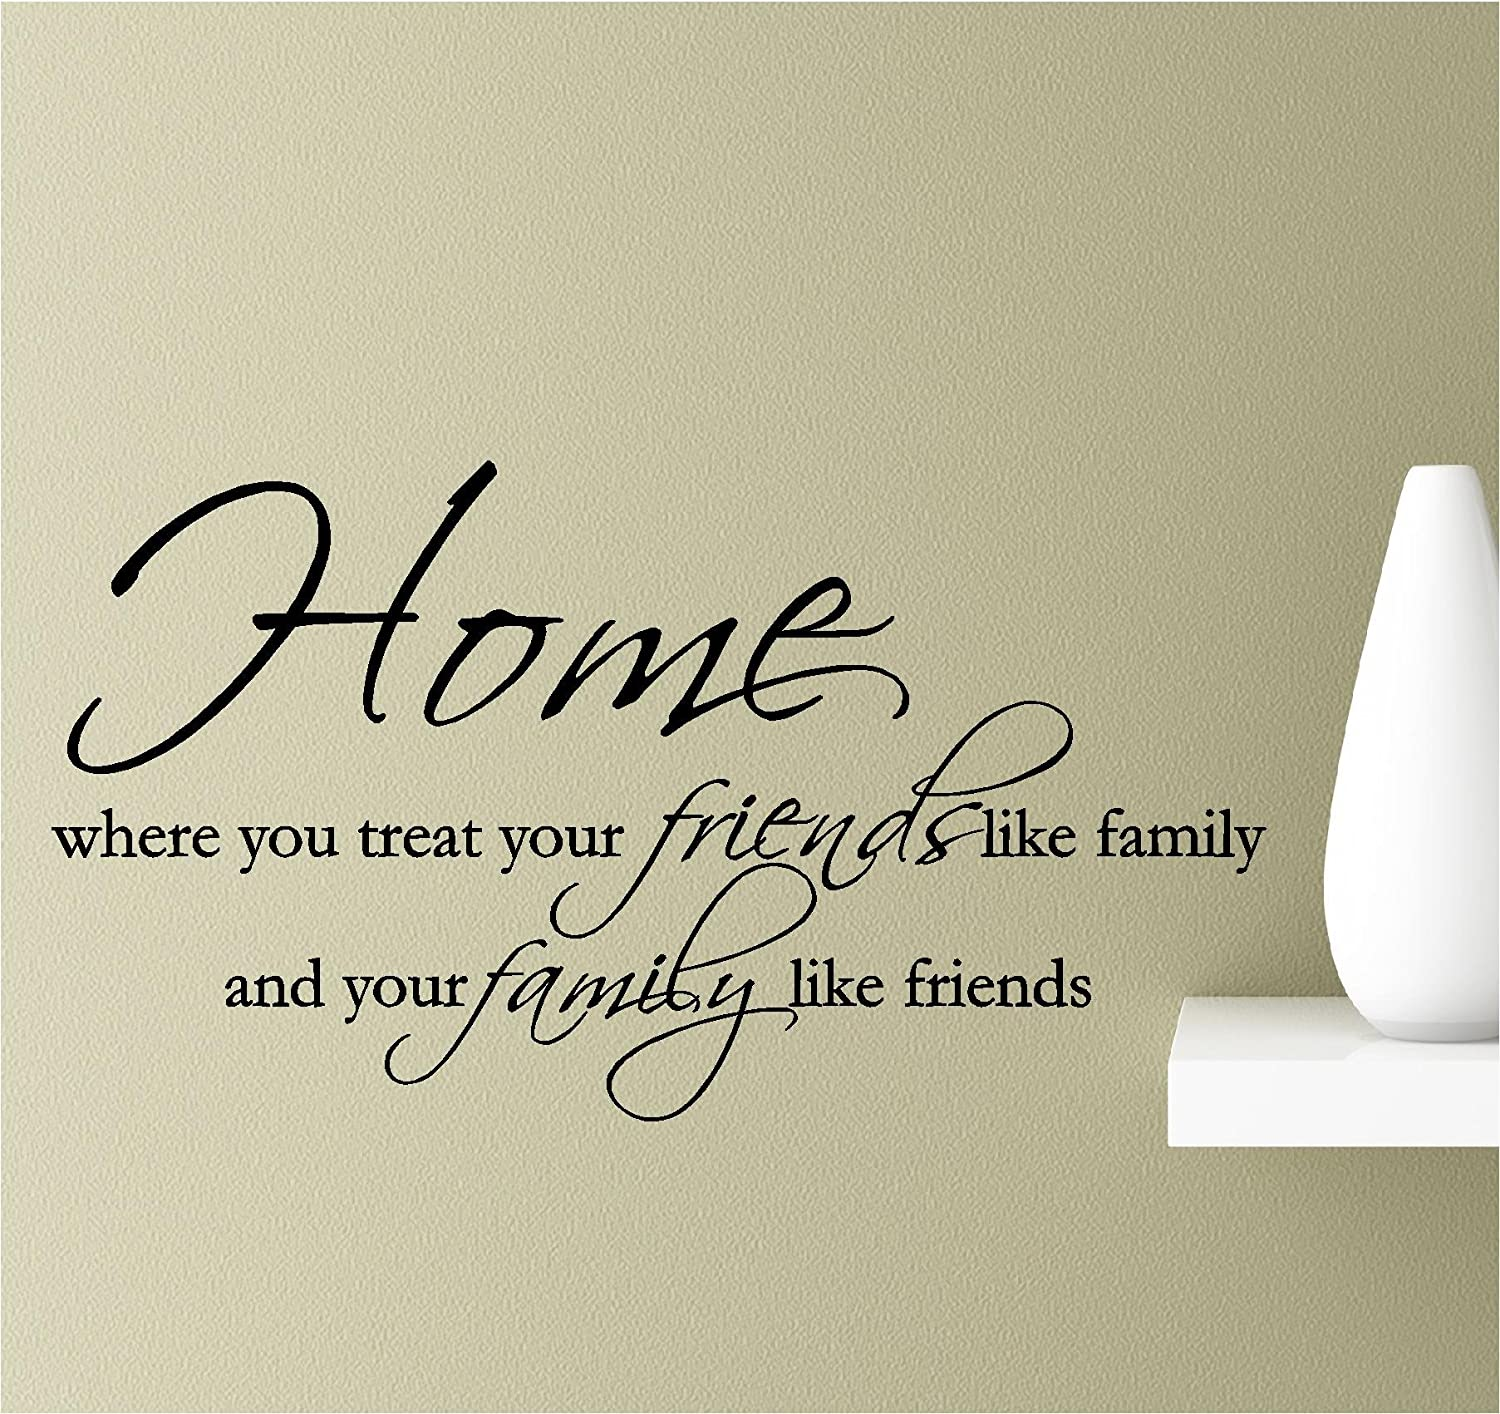 Home, Where You Treat Your Friends Like Family and Your Family Like Friends Vinyl Wall Art Inspirational Quotes Decal Sticker